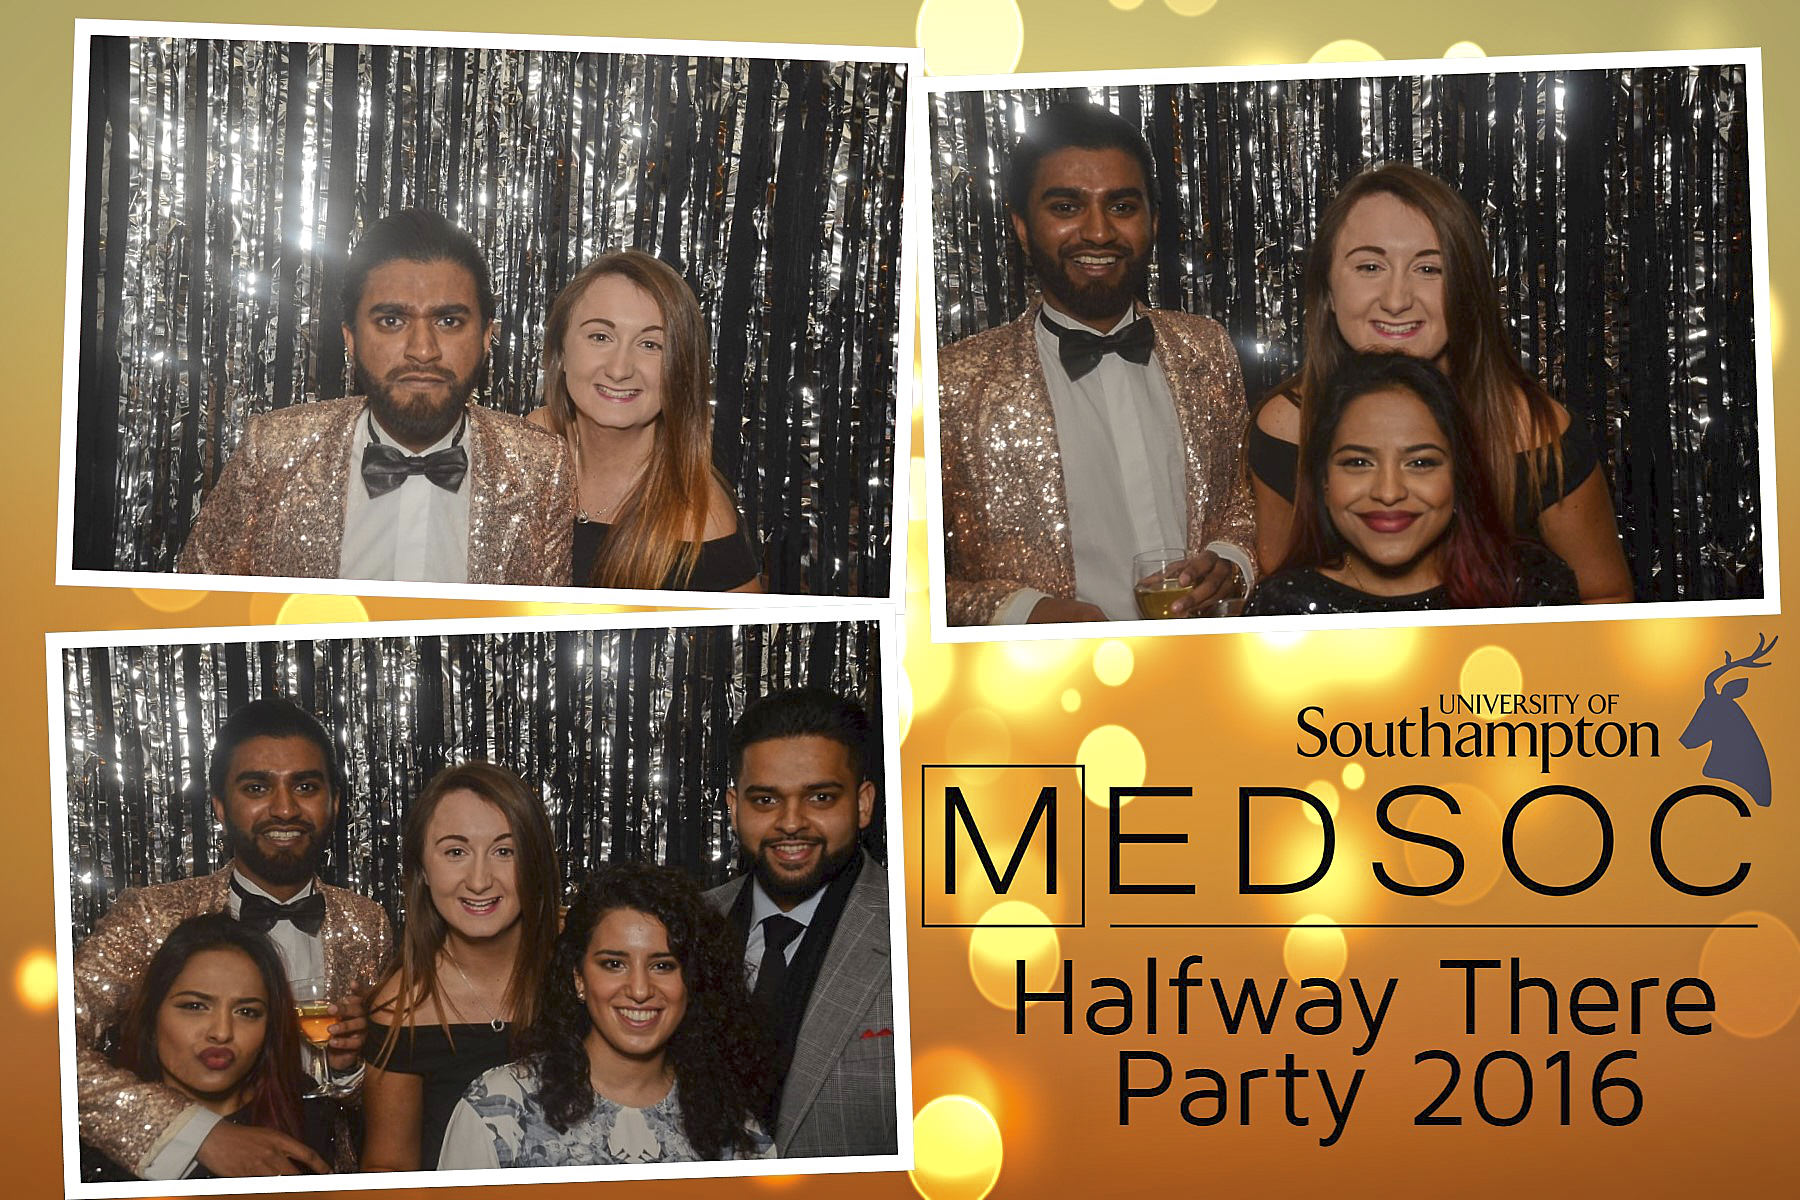 MedSoc Halfway There Party 2016 DS195822.jpg